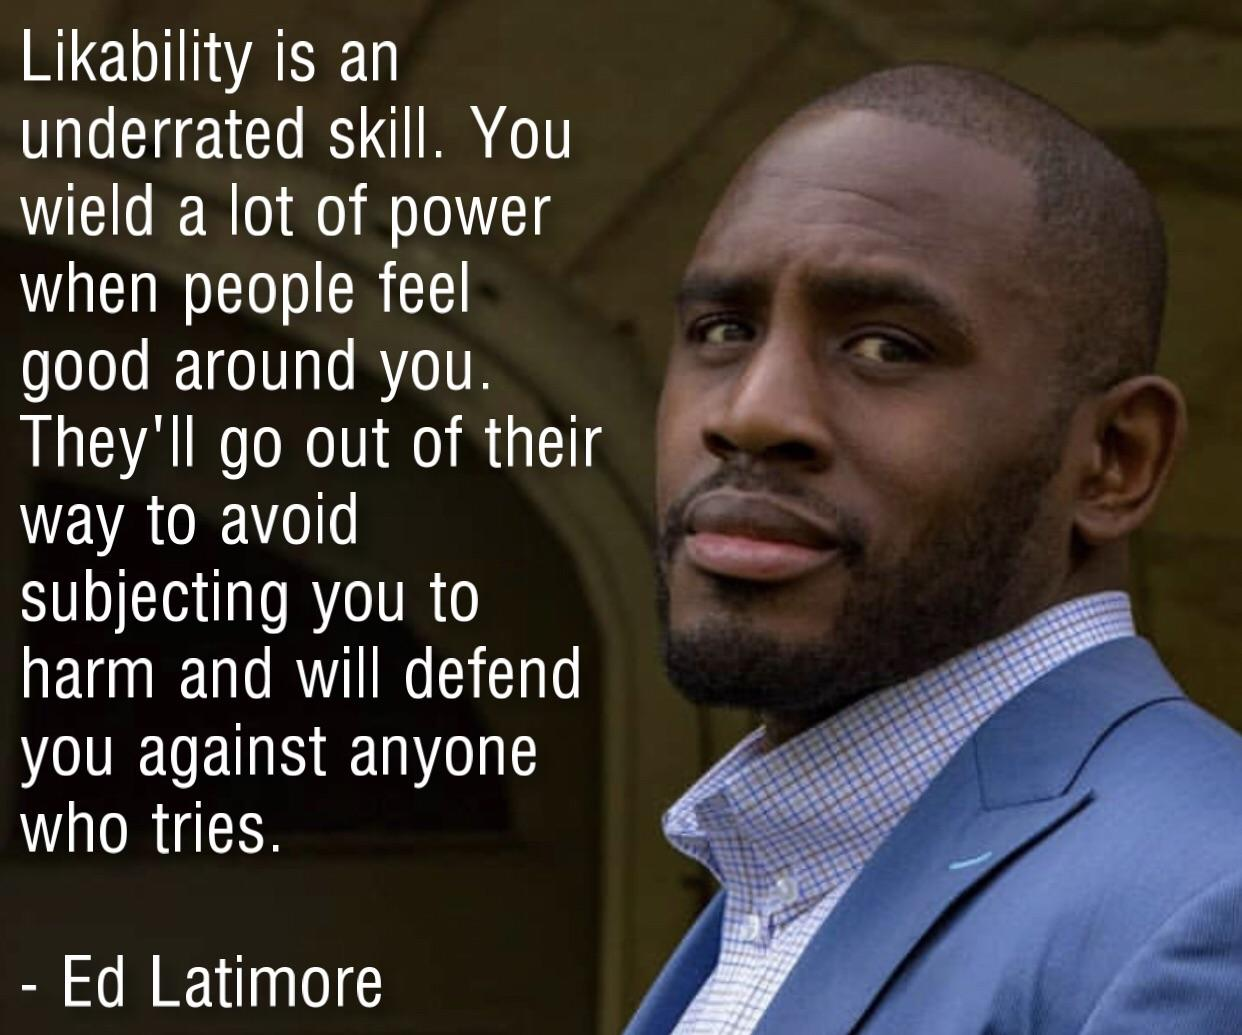 """Likability is an underrated skill…"" – Ed Latimore [1242 x 1035]"